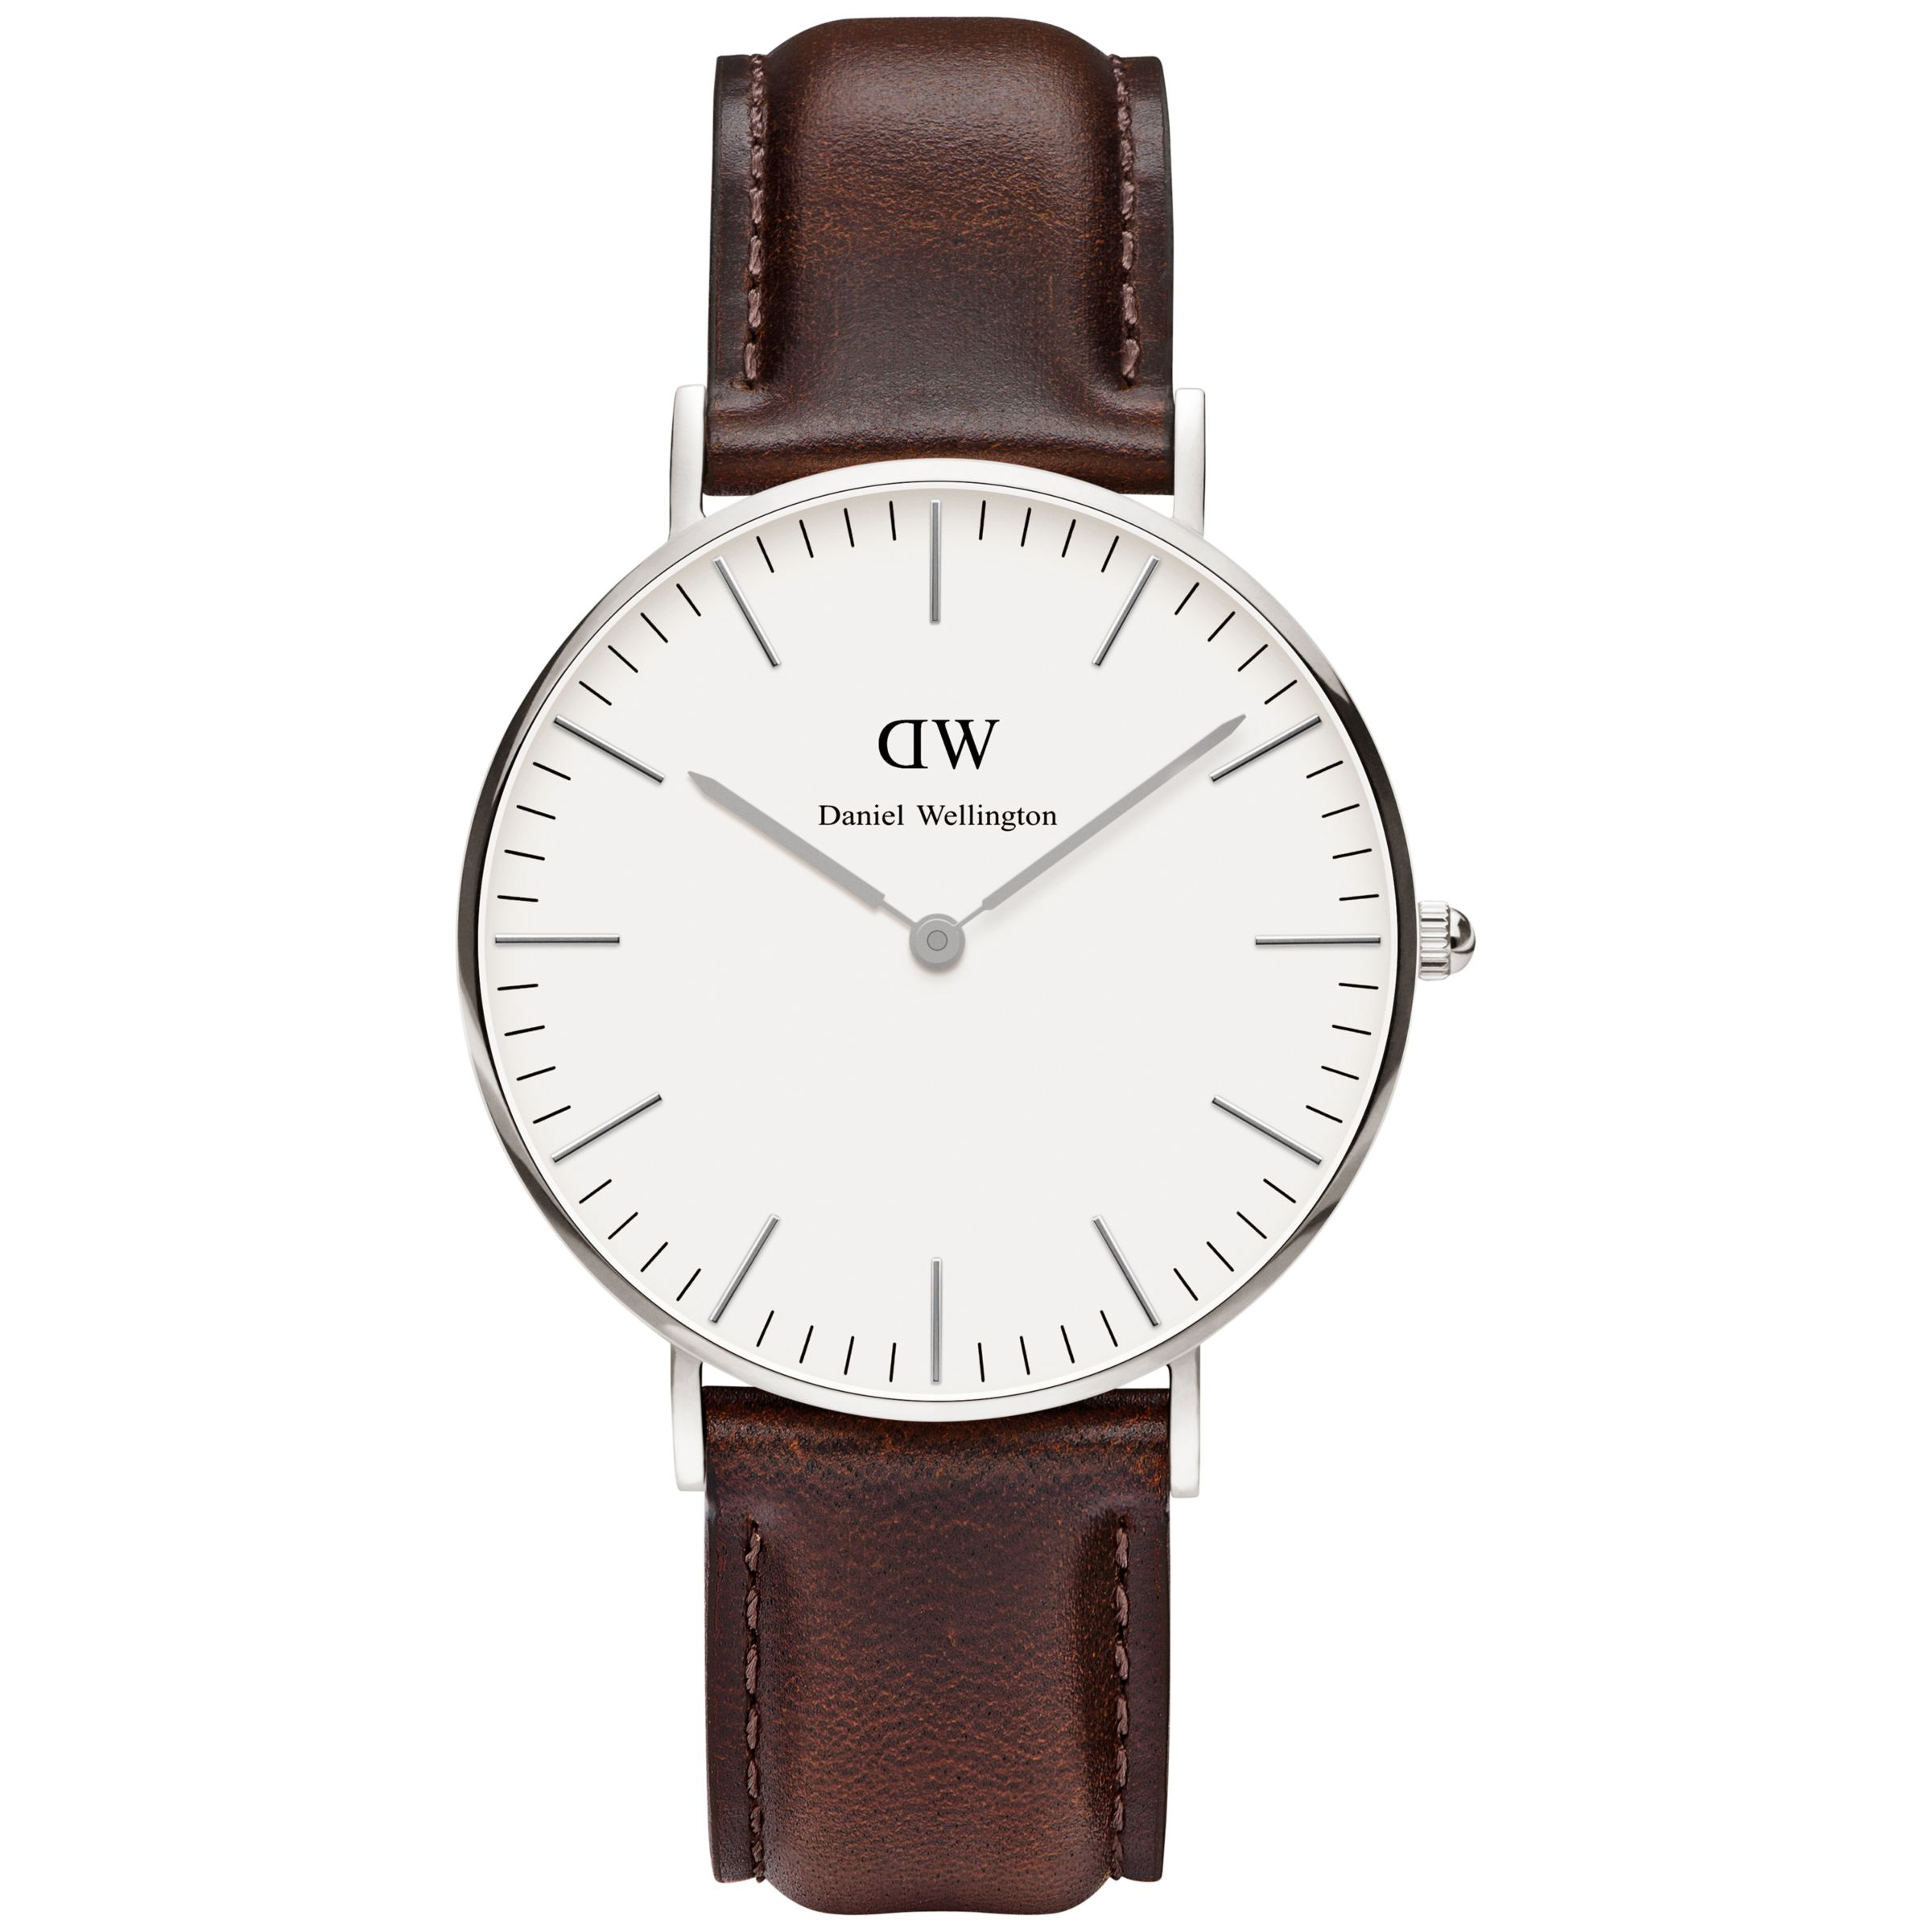 Daniel Wellington Daniel Wellington DW00100056 Women's 36mm Bristol Leather Strap Watch, Brown/White